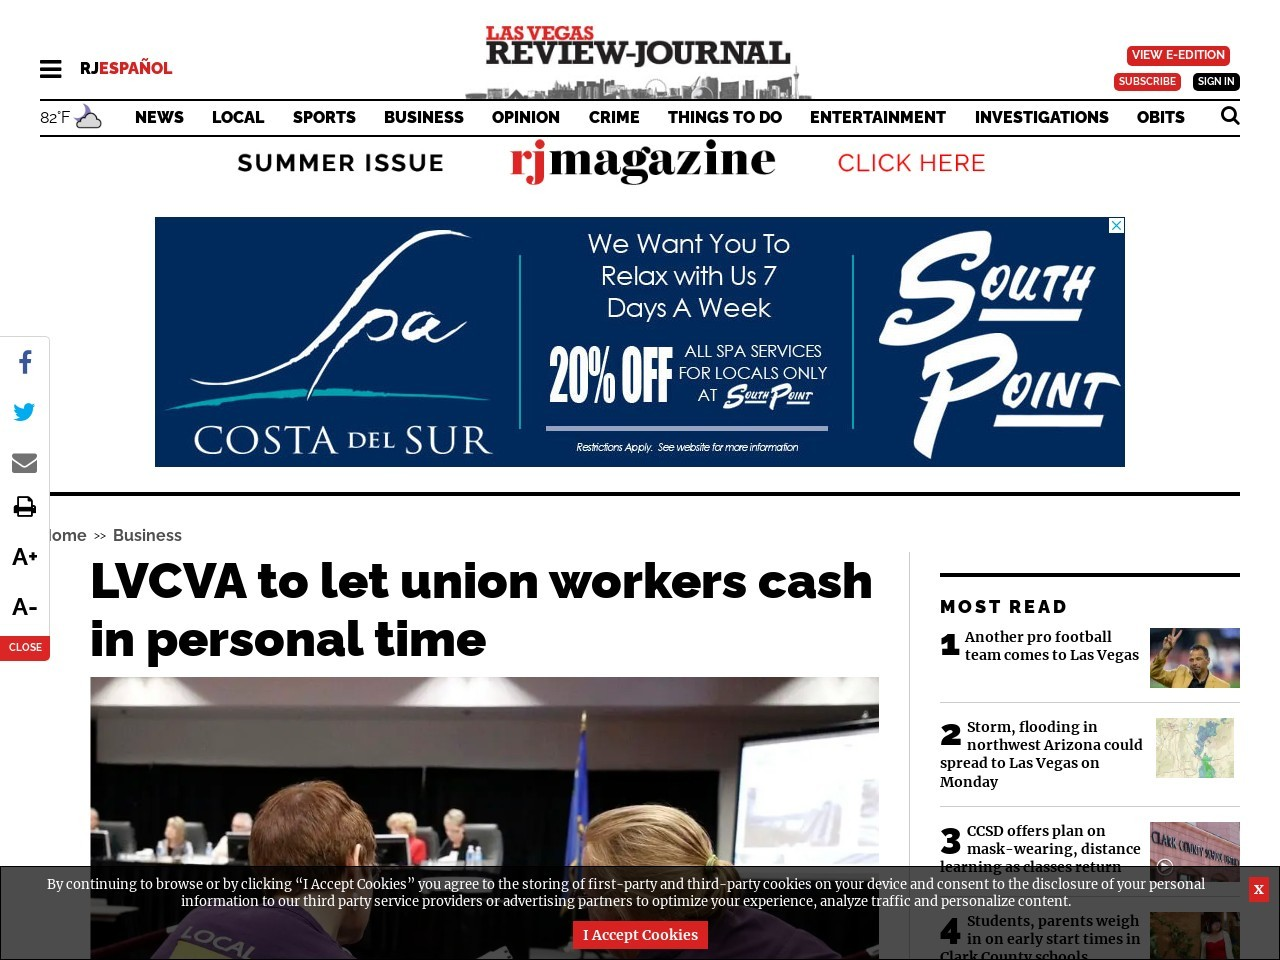 LVCVA to let union workers cash in personal time